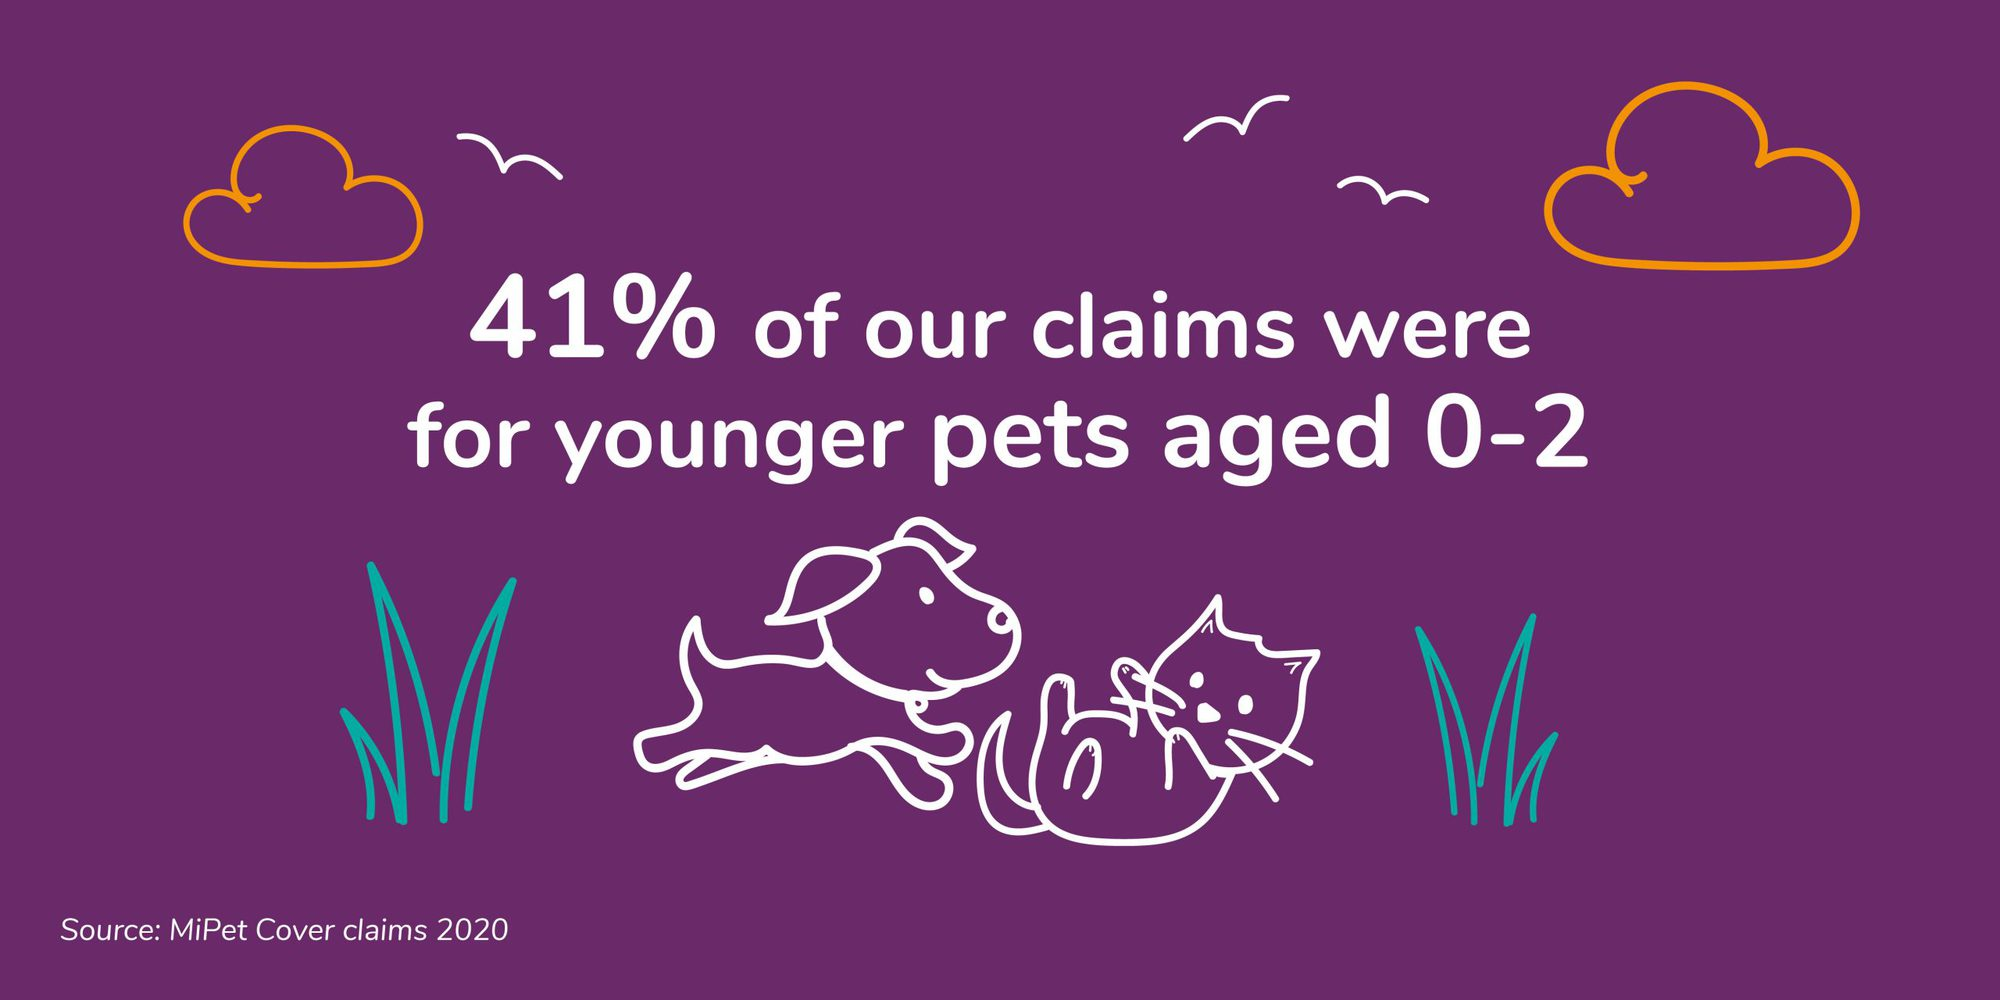 41% of MiPet Cover pet insurance claims were for pats aged 0-2 years old